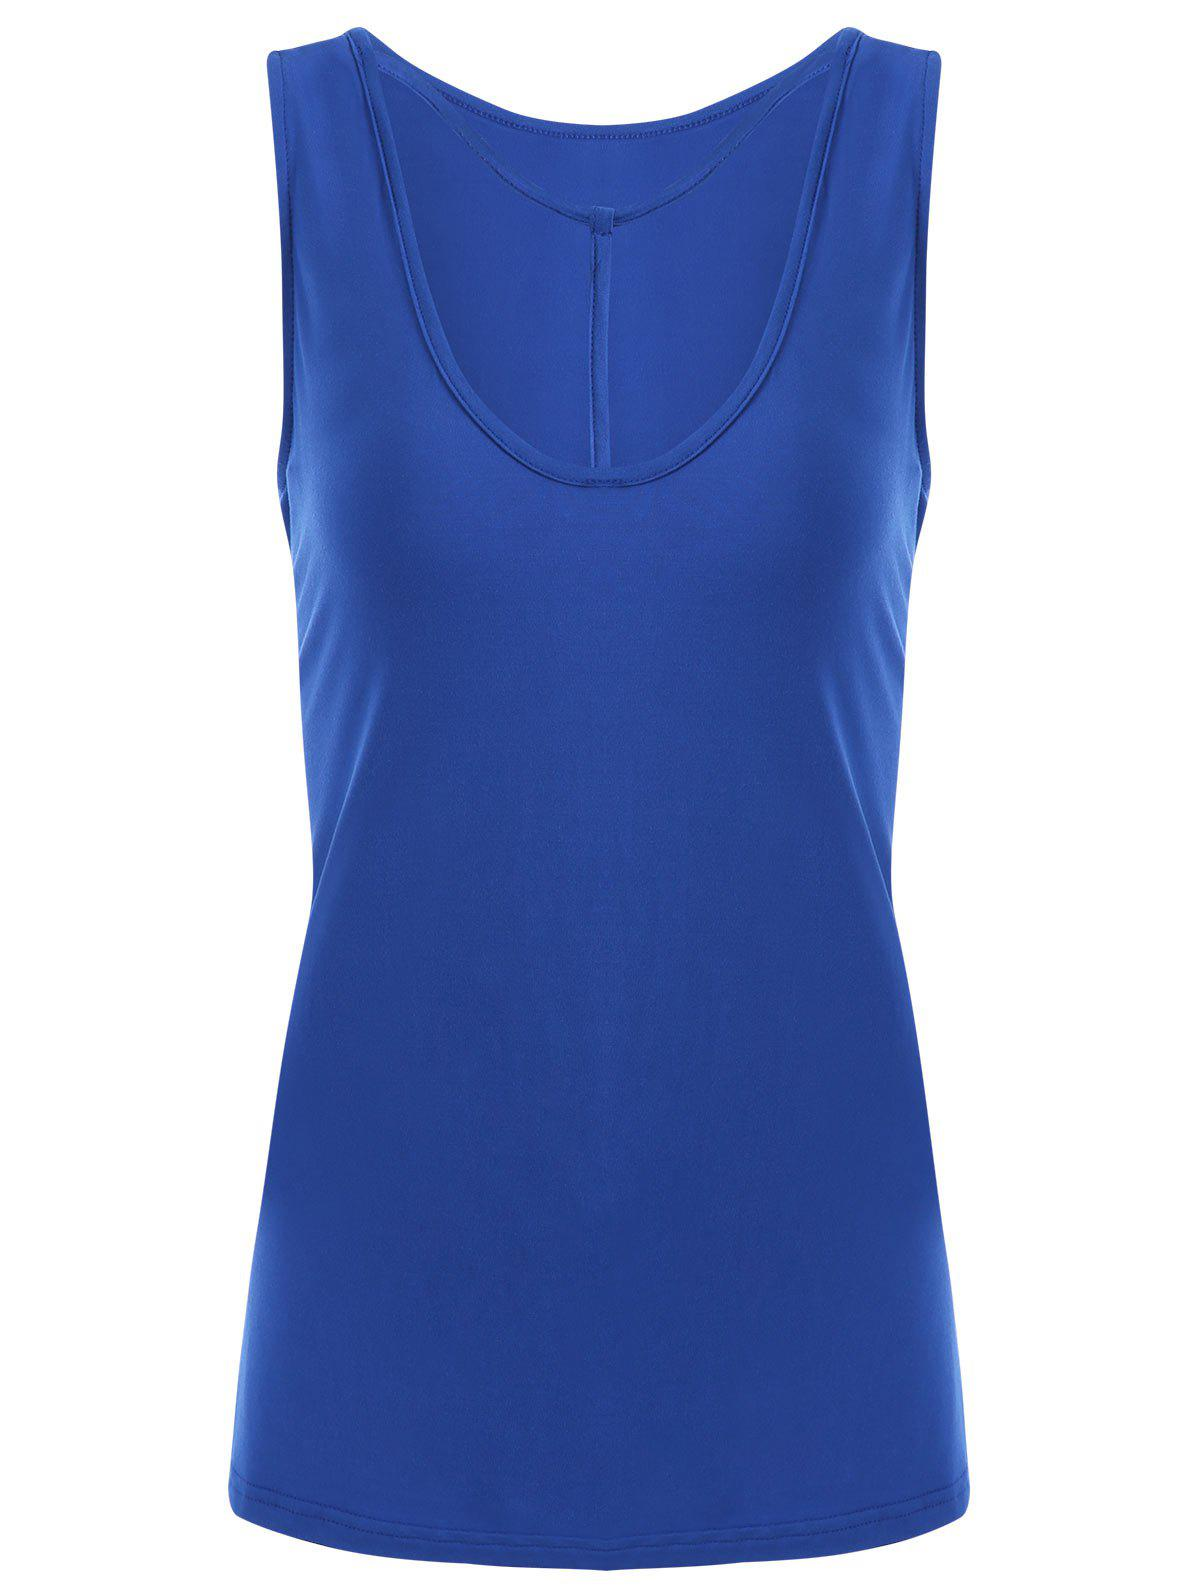 Y-strap Casual Tank Top - BLUE M